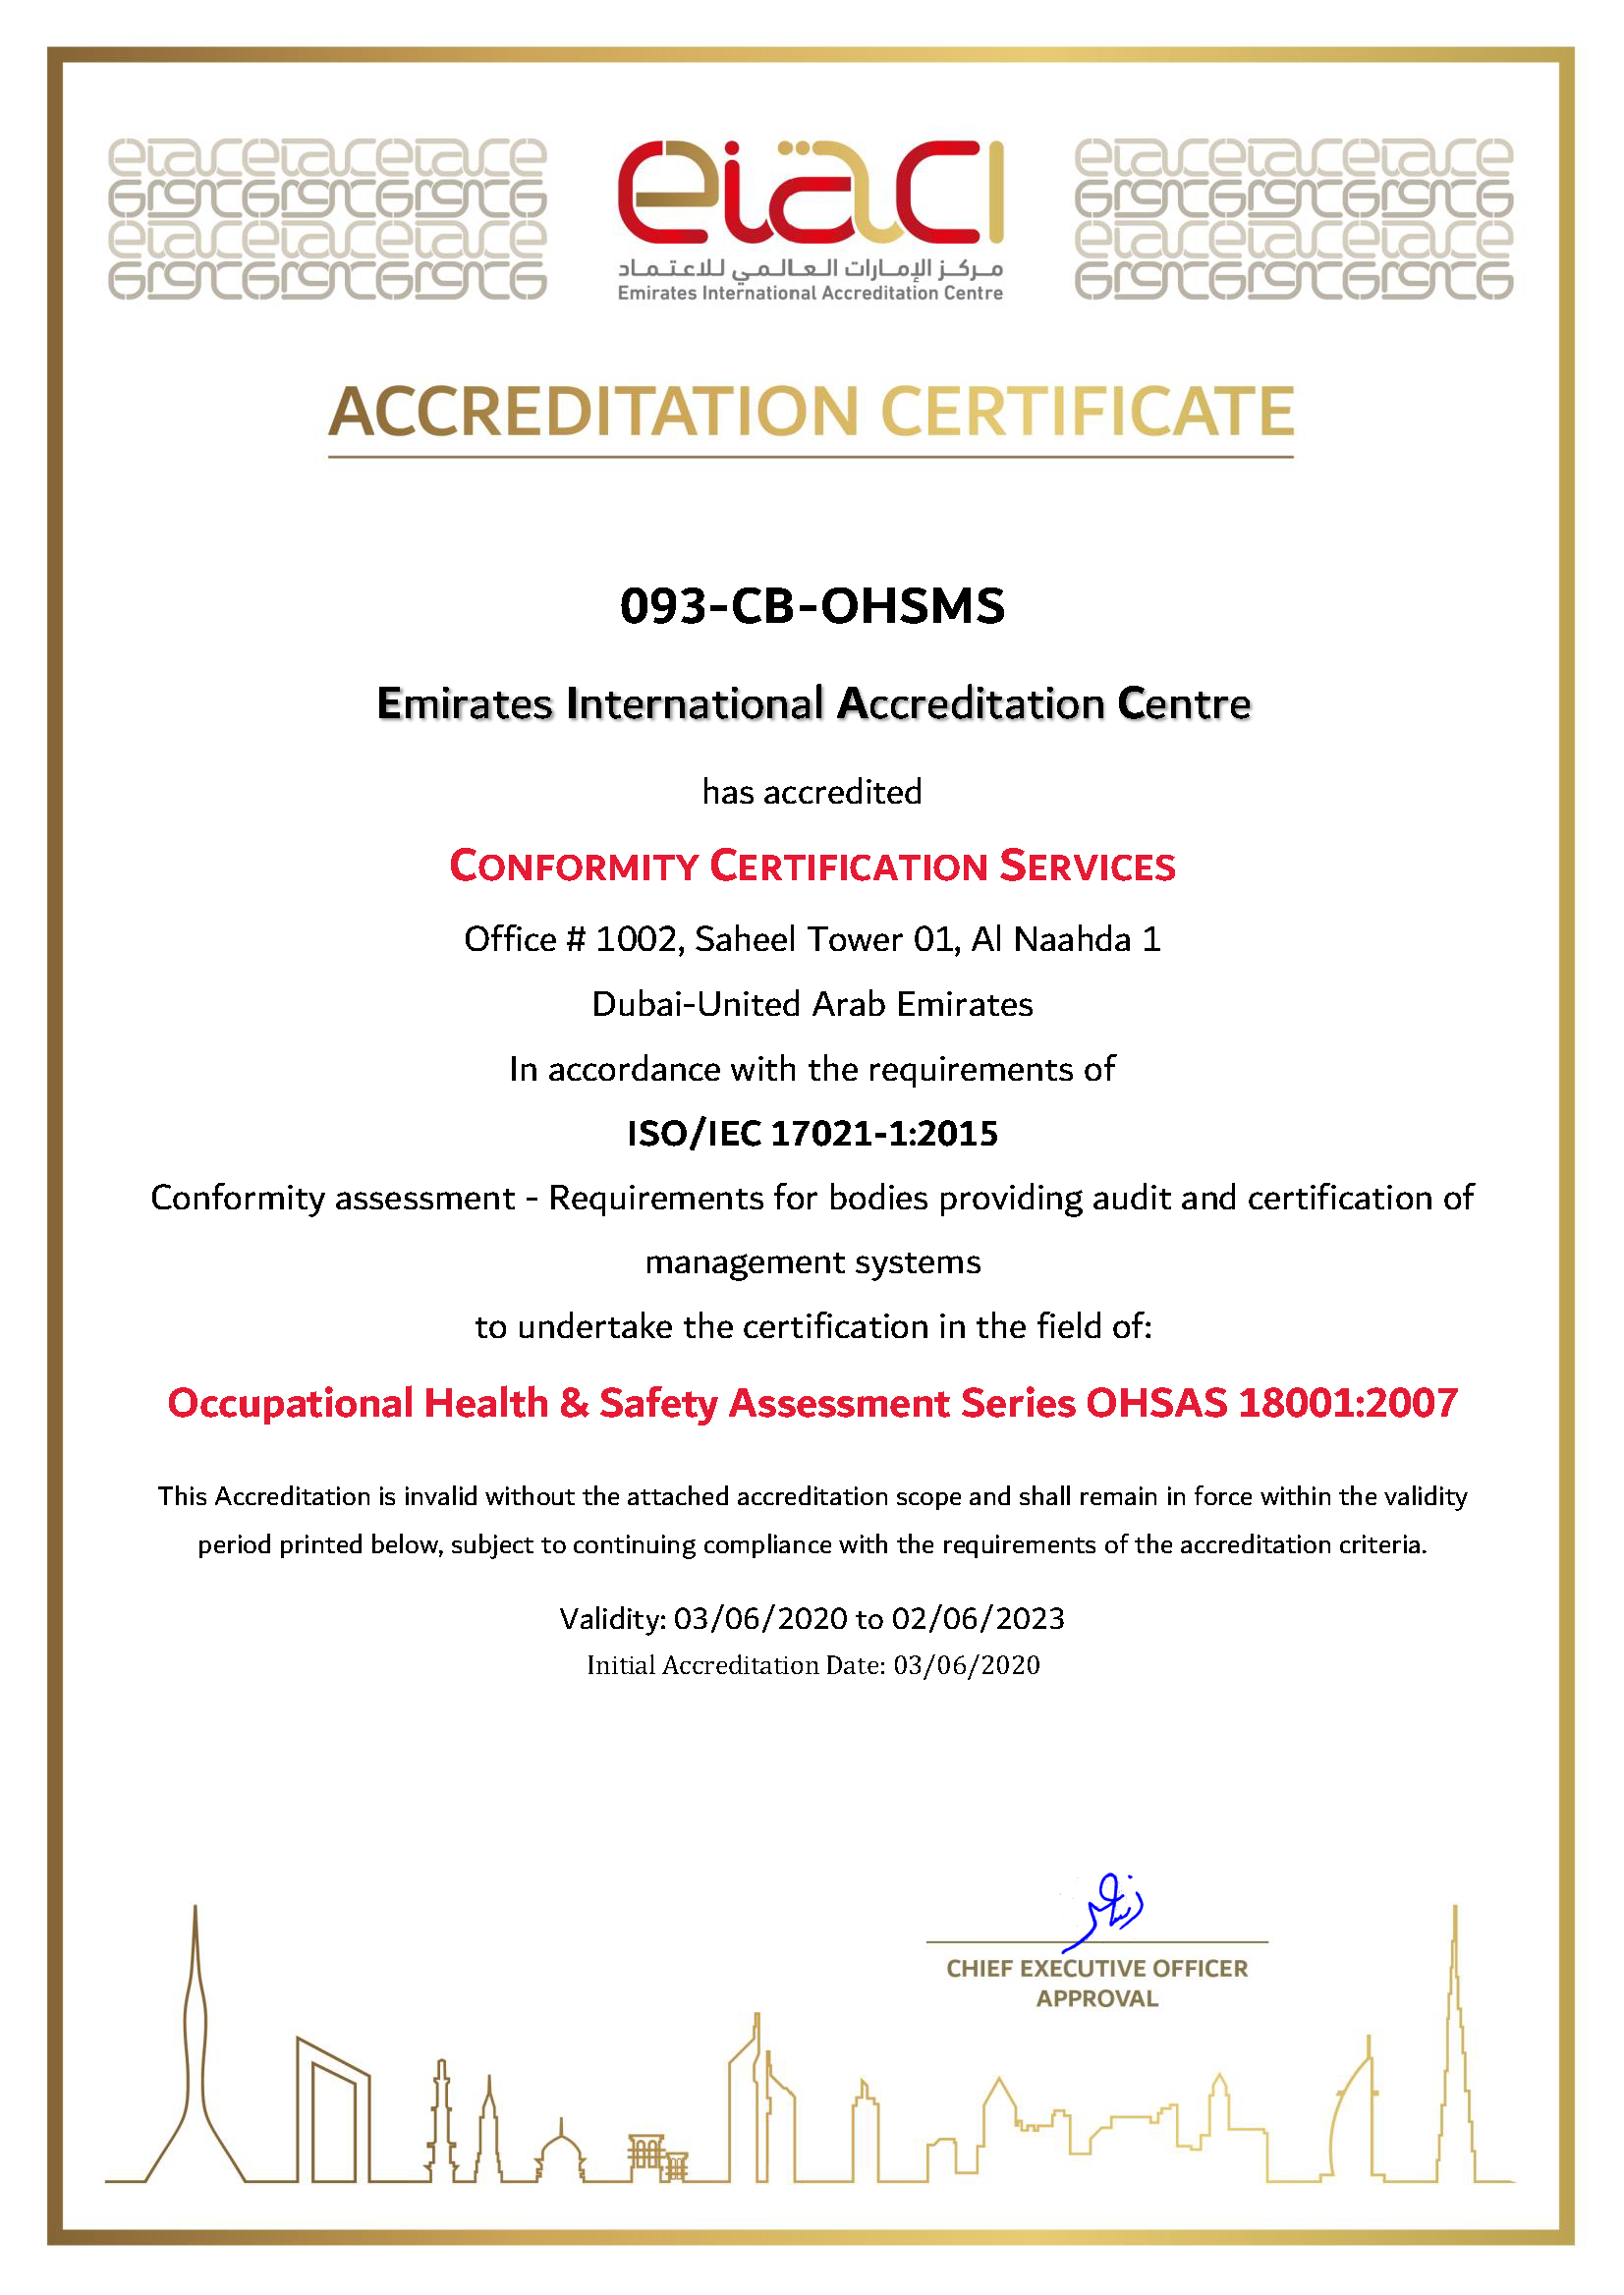 Conformity Certification Services CB OHSMS 093 Page 1